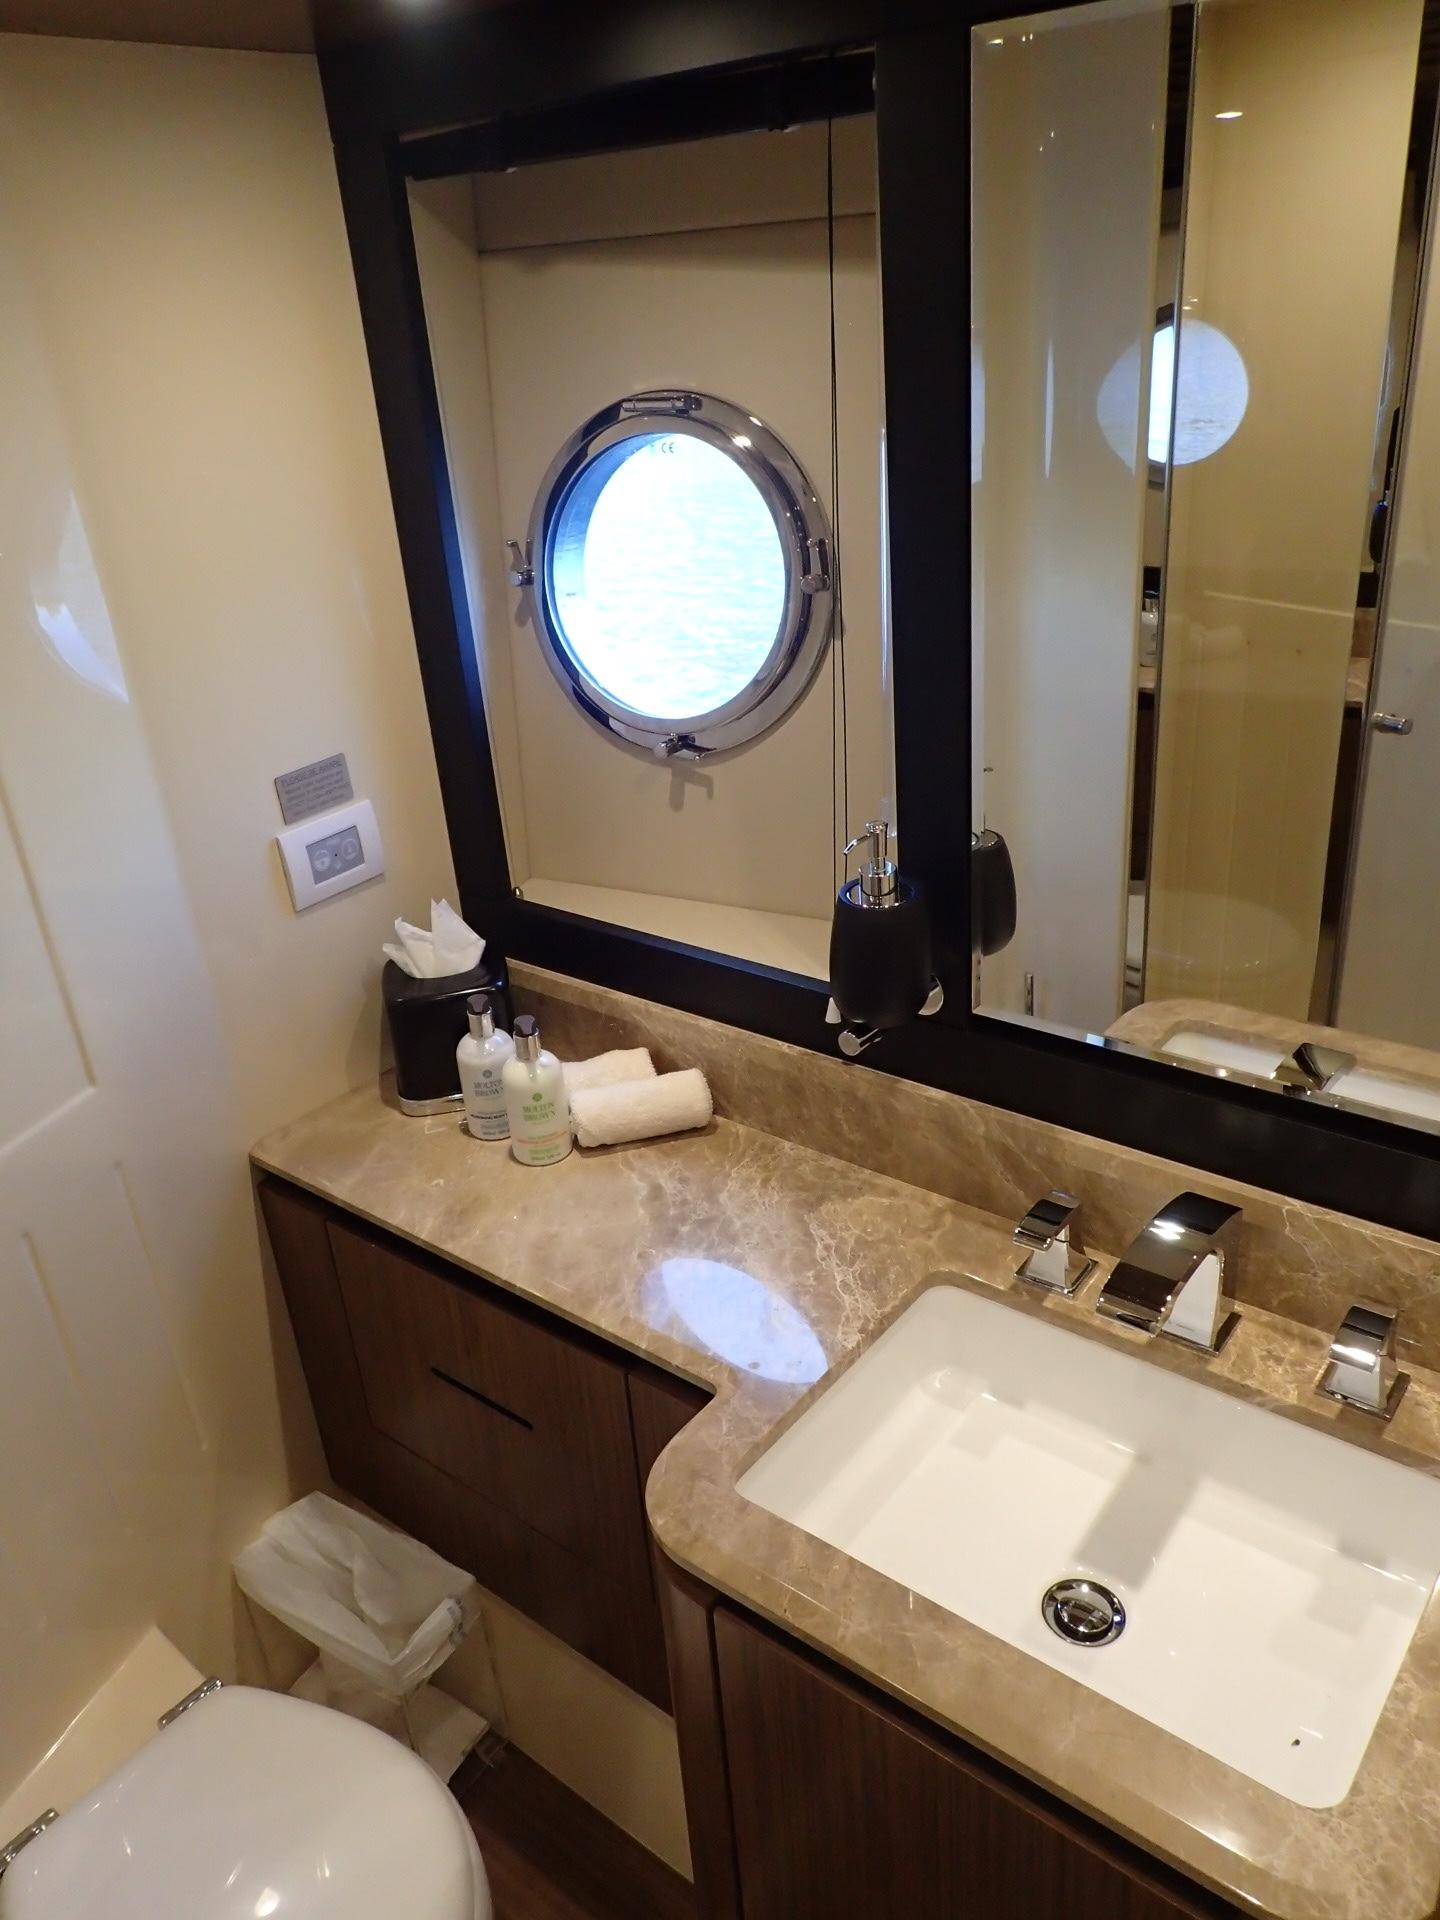 Azimut  PURA VIDA For Sale In Fort Lauderdale Florida US -  fort lauderdale bathroom mirror light